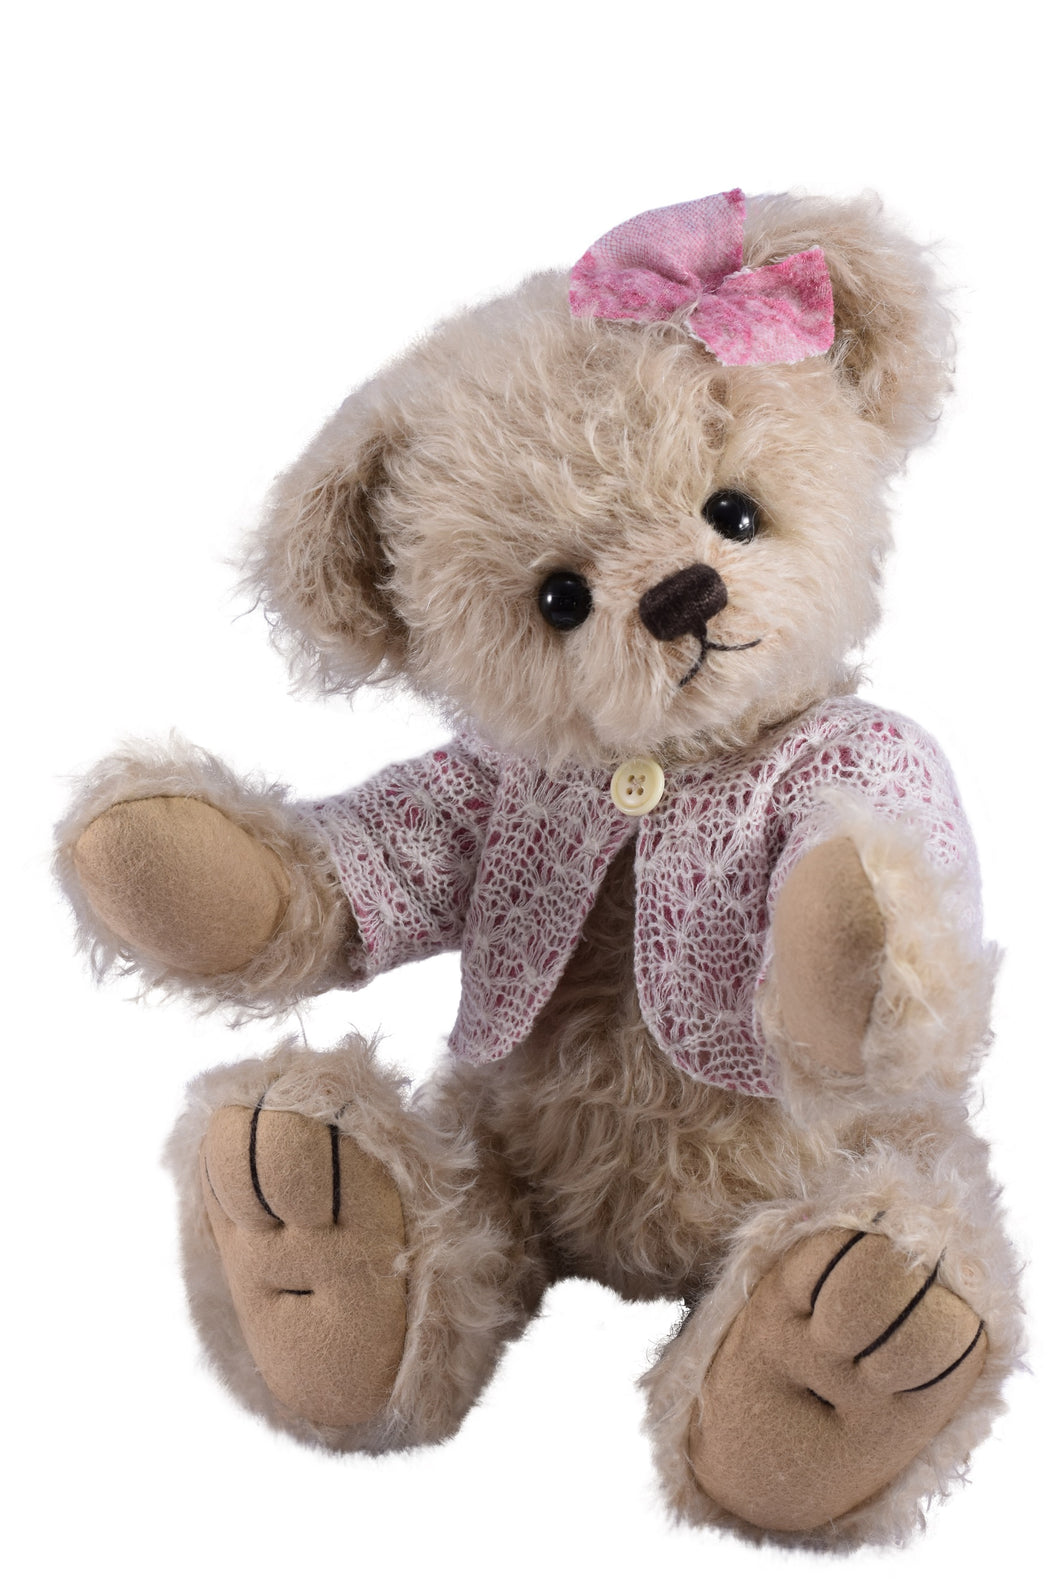 ONLY ONE LEFT! TEDDY JULE / CLEMENS MOHAIR ARTIST LIMITED EDITION BEAR